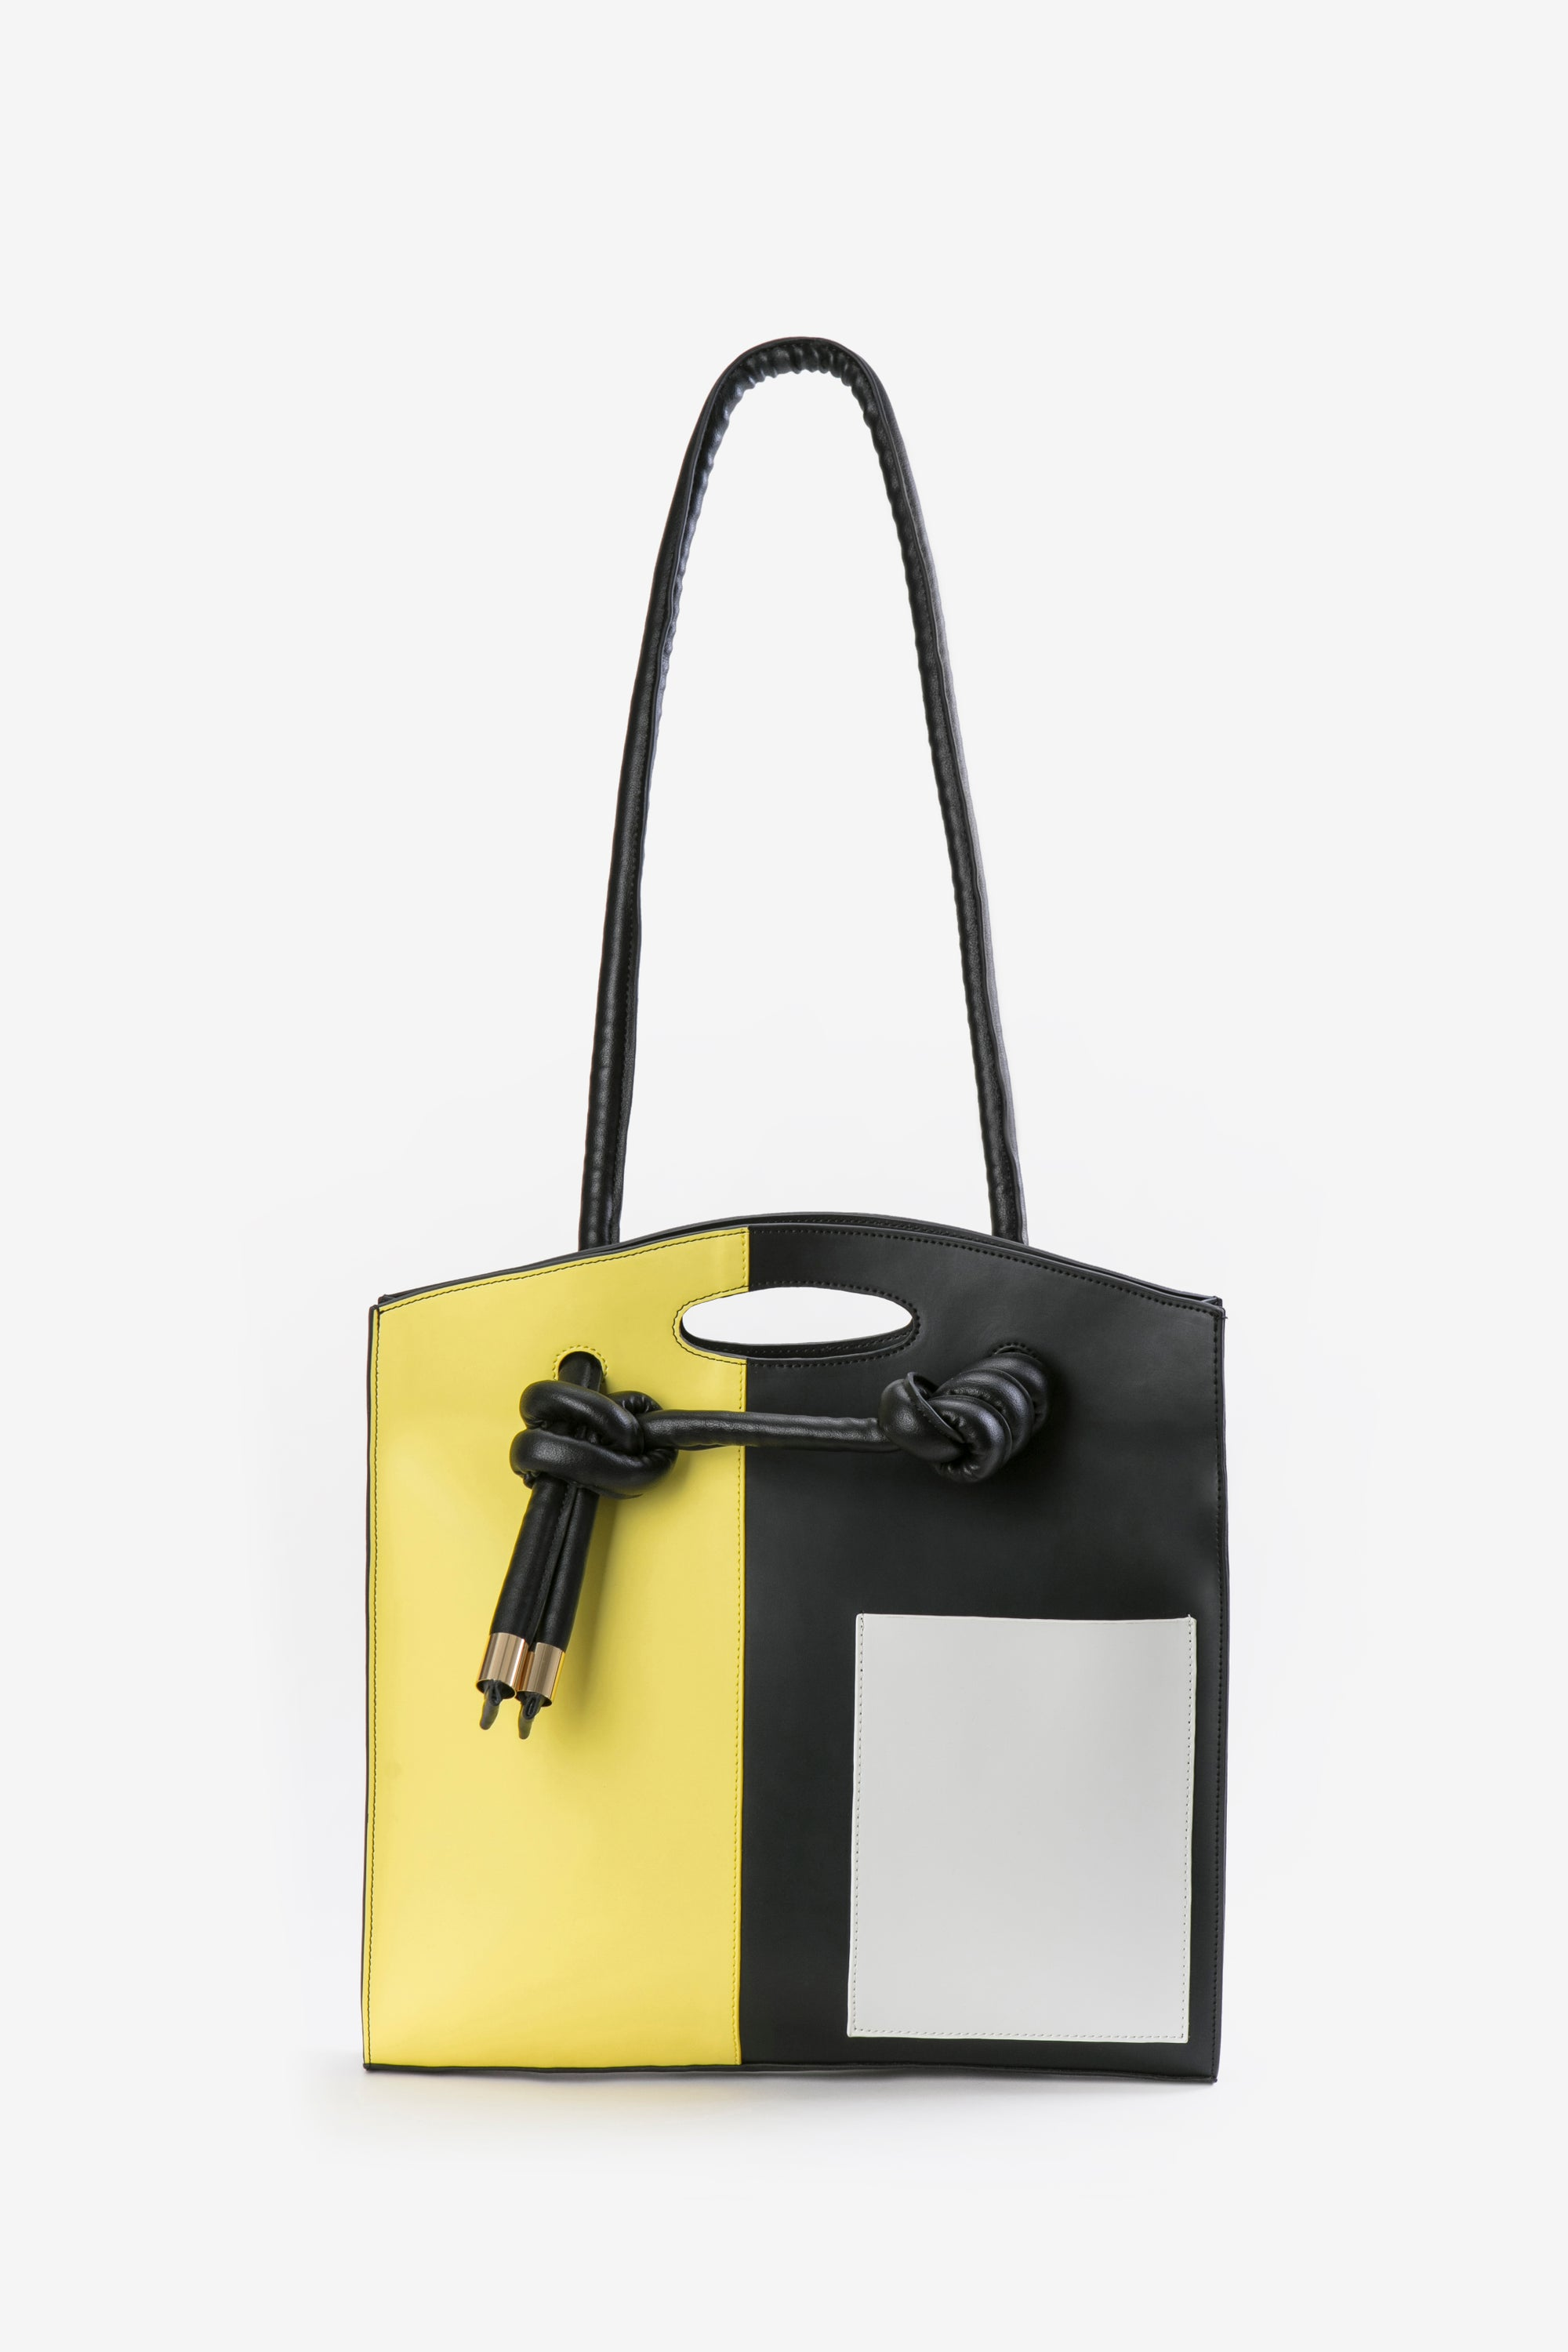 Image of ZOEE 2 ways multicolour patchwork knot leather bag - yellow combo